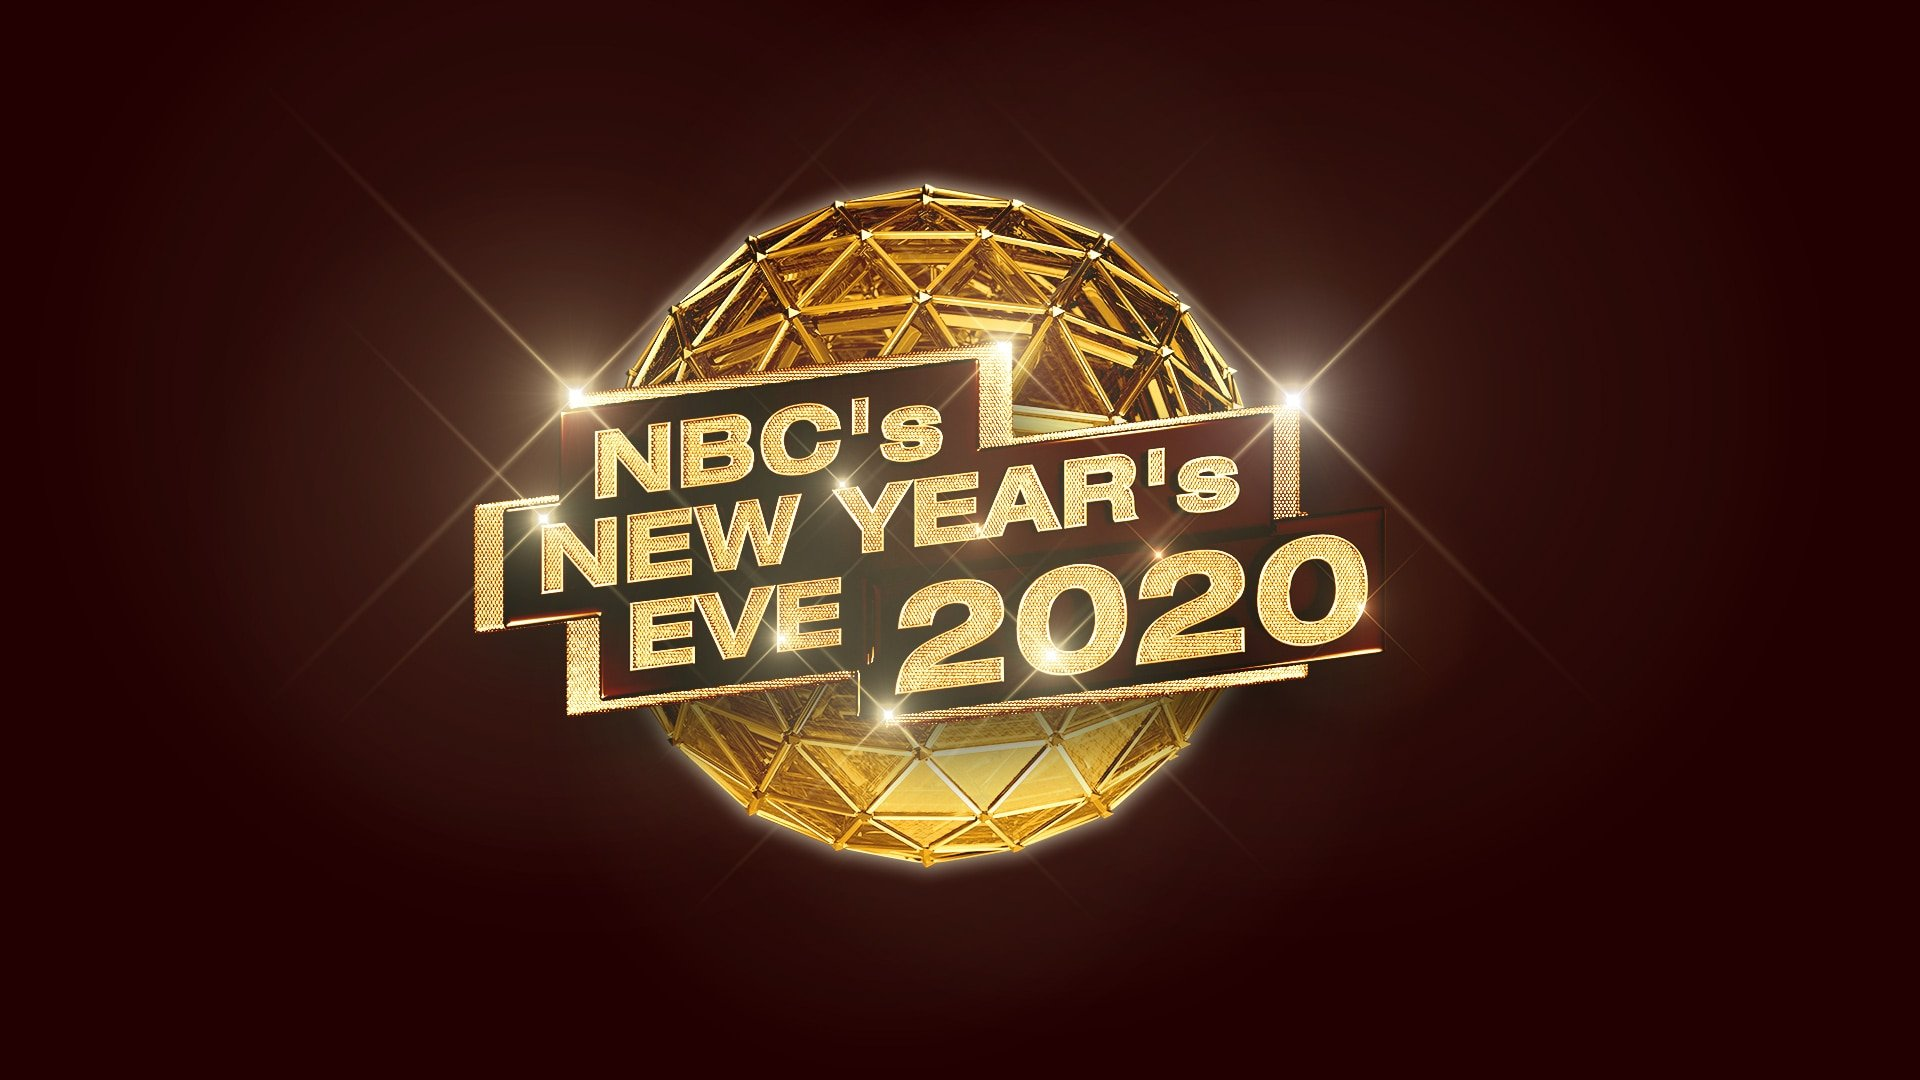 How to Stream NBC's New Year's Eve 2020 With Carson Daly ...